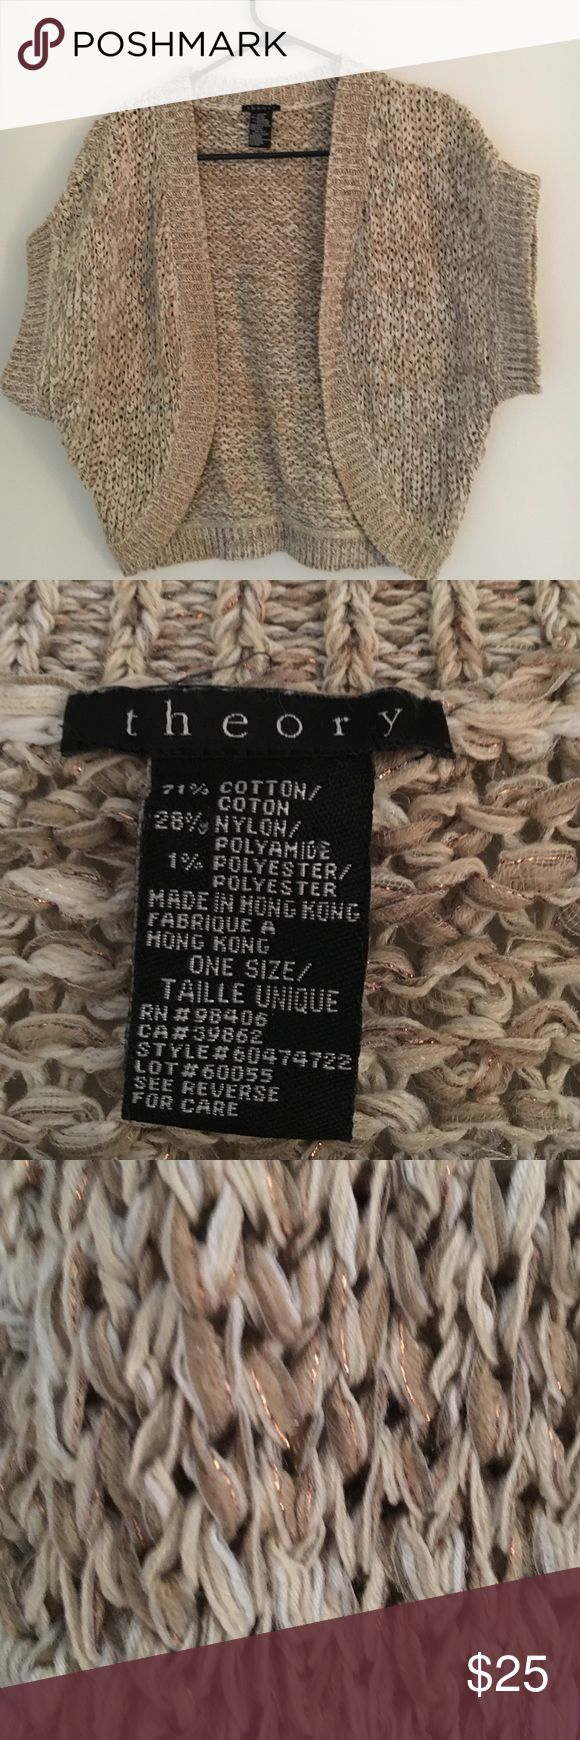 Theory Shrug Sweater gold and cream Adorable little theory shrug sweater. The tag reads: one size, but I would say it's a s/m. This piece is so cute to layer for spring or to have on hand for a cooler summer evening. Theory Sweaters Shrugs & Ponchos